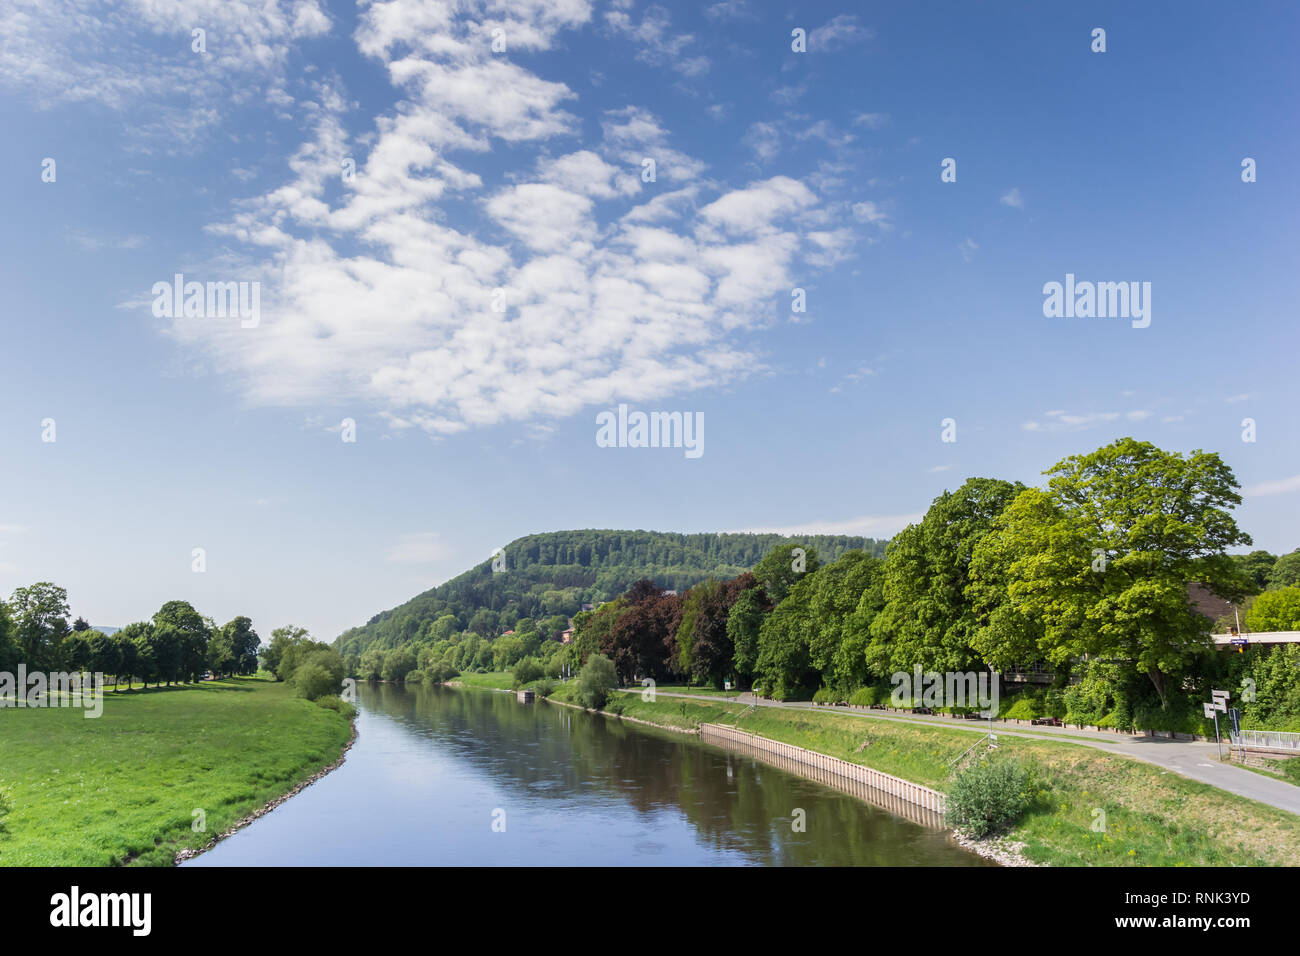 River Weser and the landscape of the Weserbergland near Hoxter, Germany Stock Photo